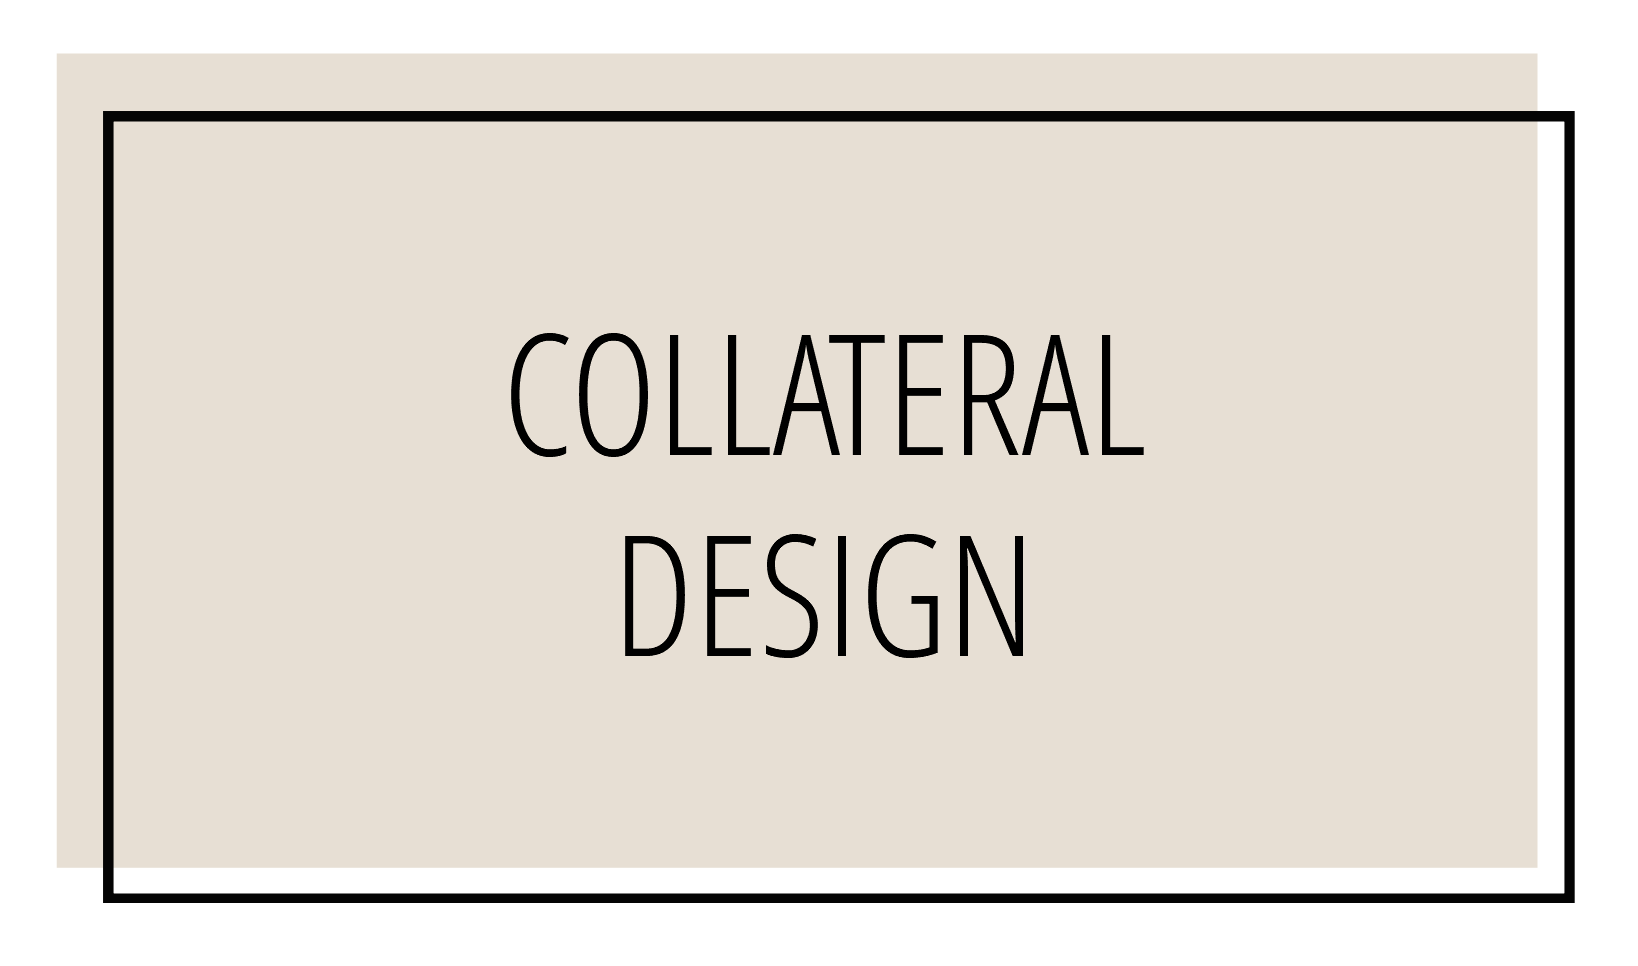 Collateral Design Andrea K Chapman